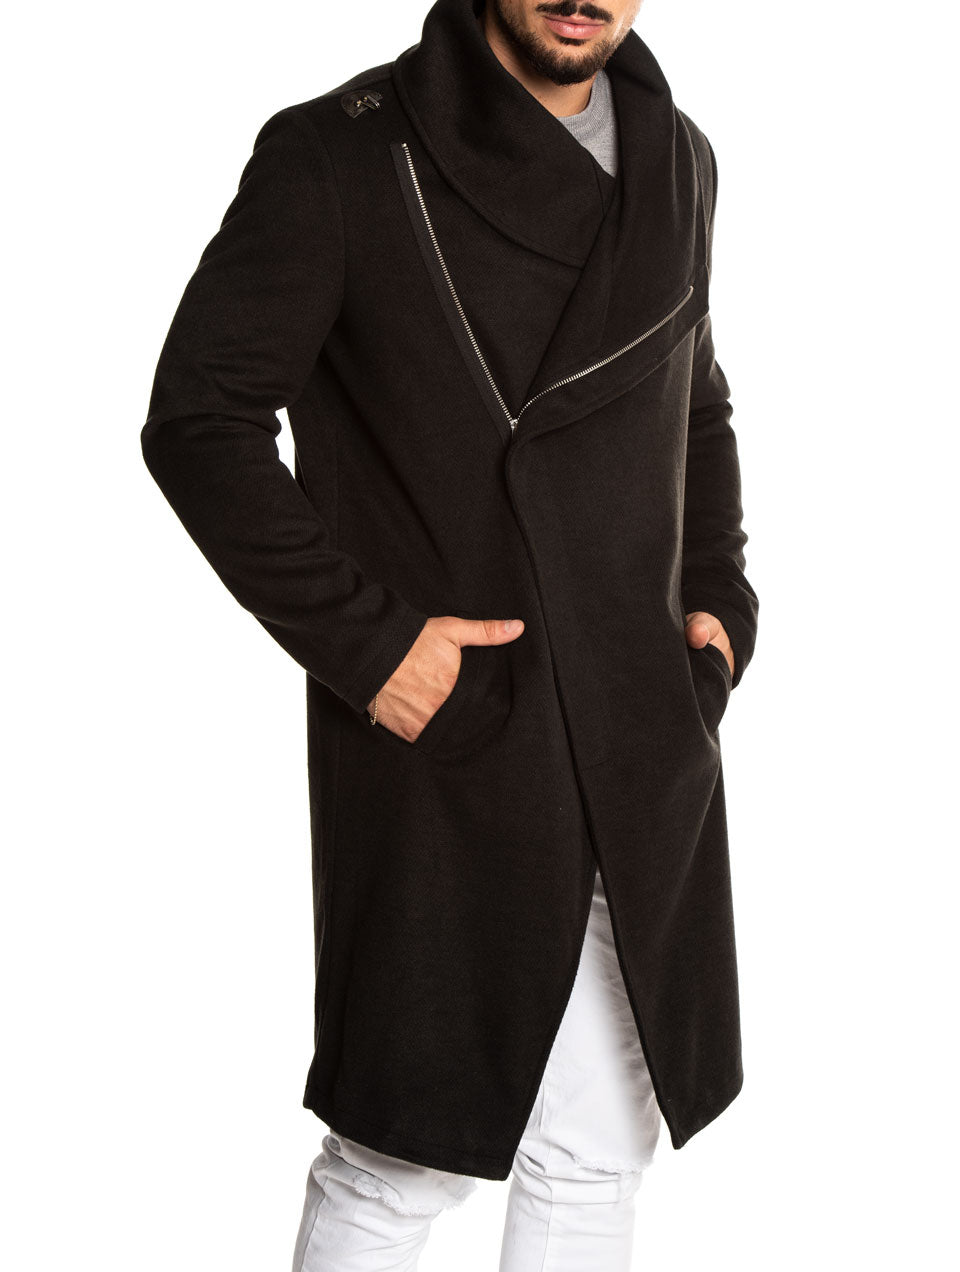 MAYNARD COAT IN BLACK